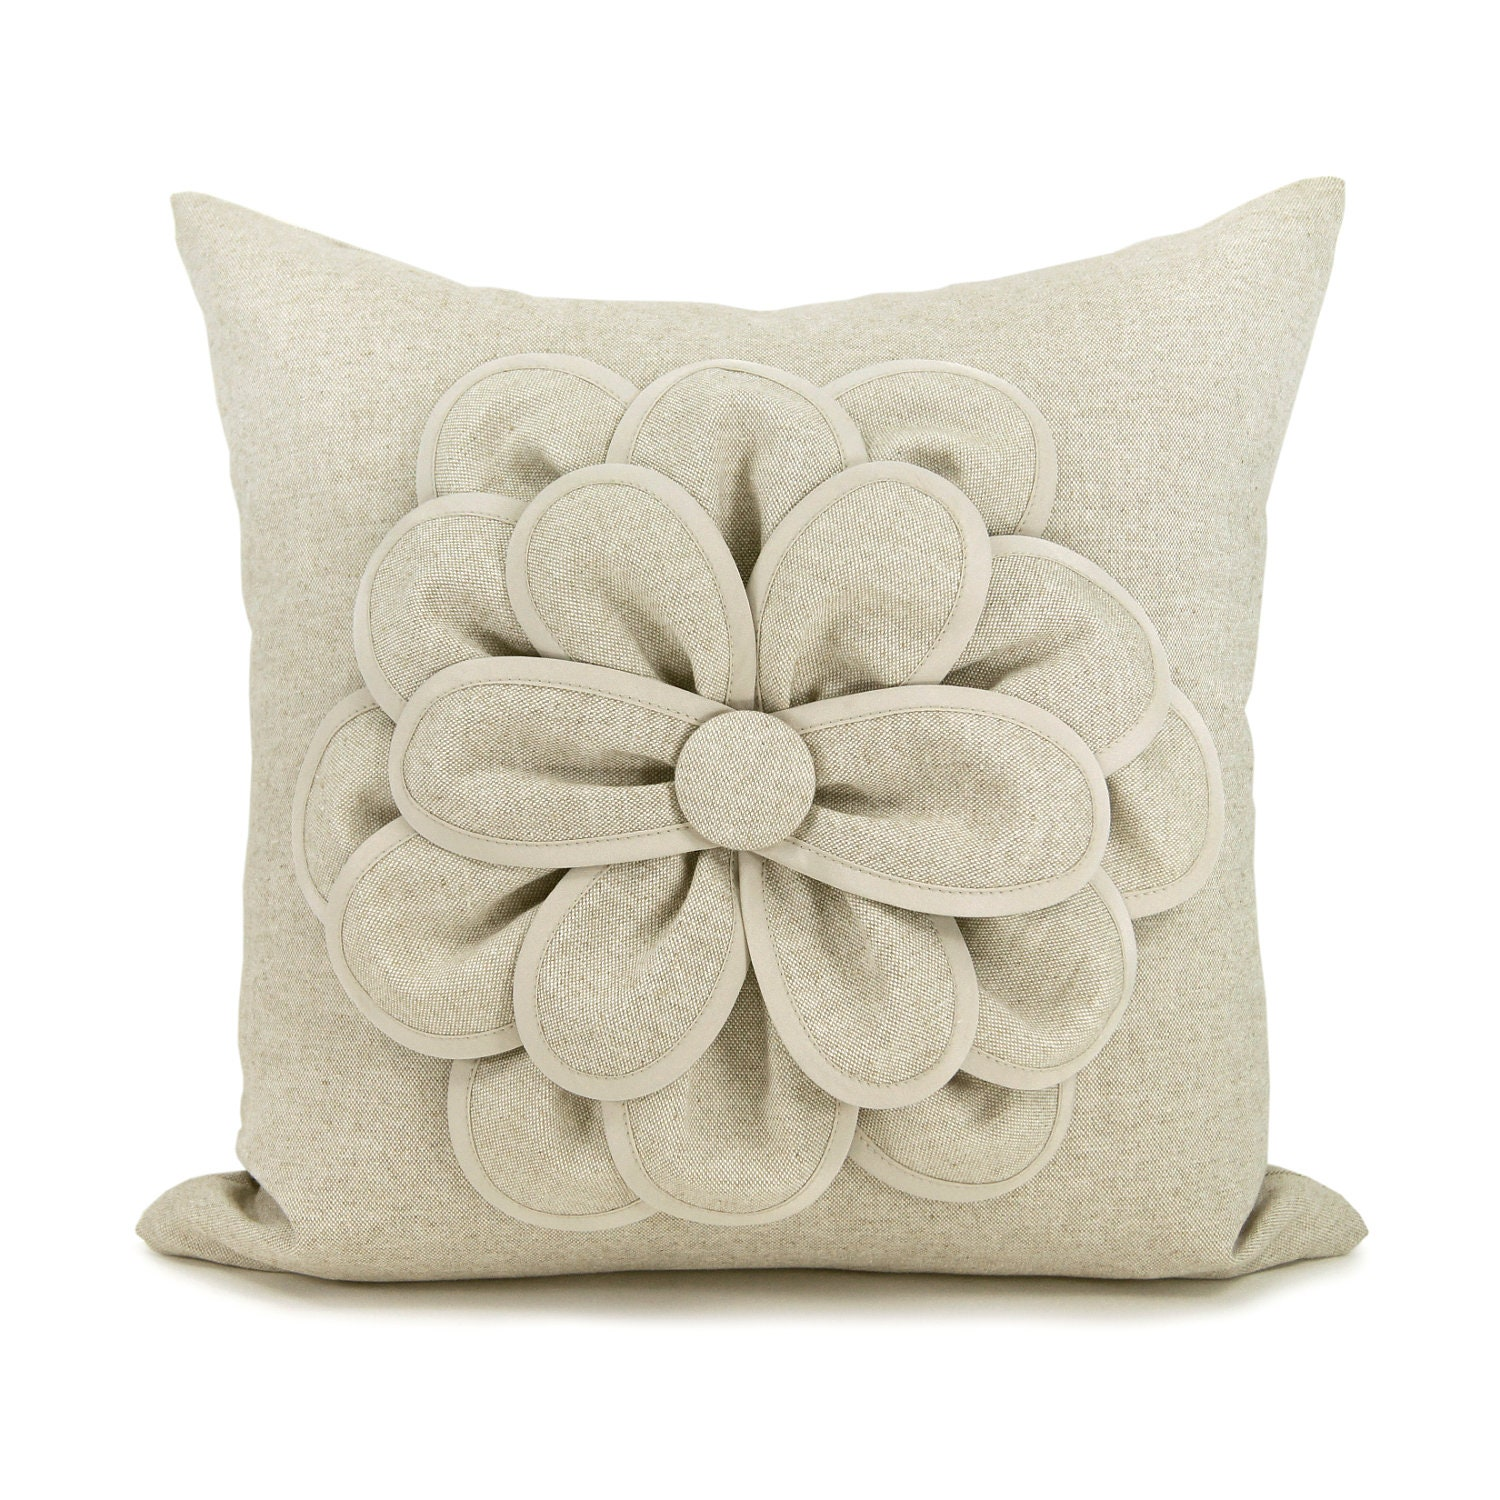 Decorative Throw Pillows Etsy : 16x16 Decorative Pillow Cover Flower Pillow Cover Natural